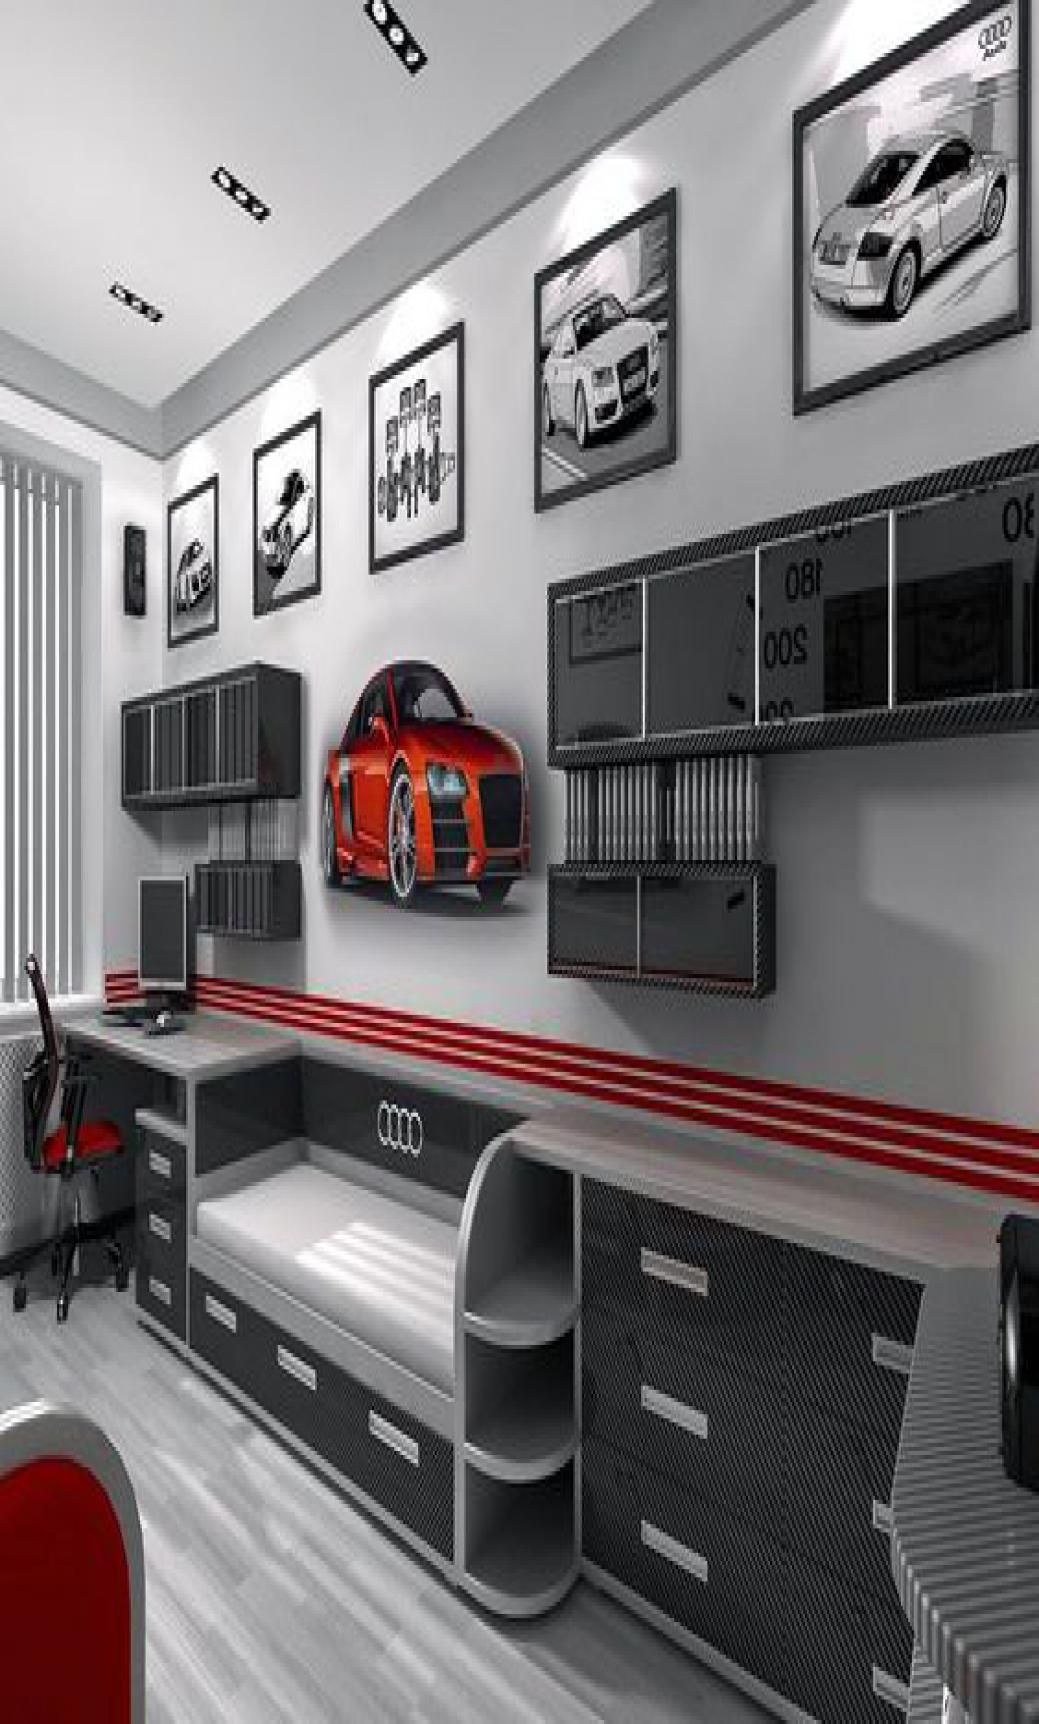 Baby Boy Room Cars: 45 Awesome Minimalist Bedroom Design Ideas In 2020